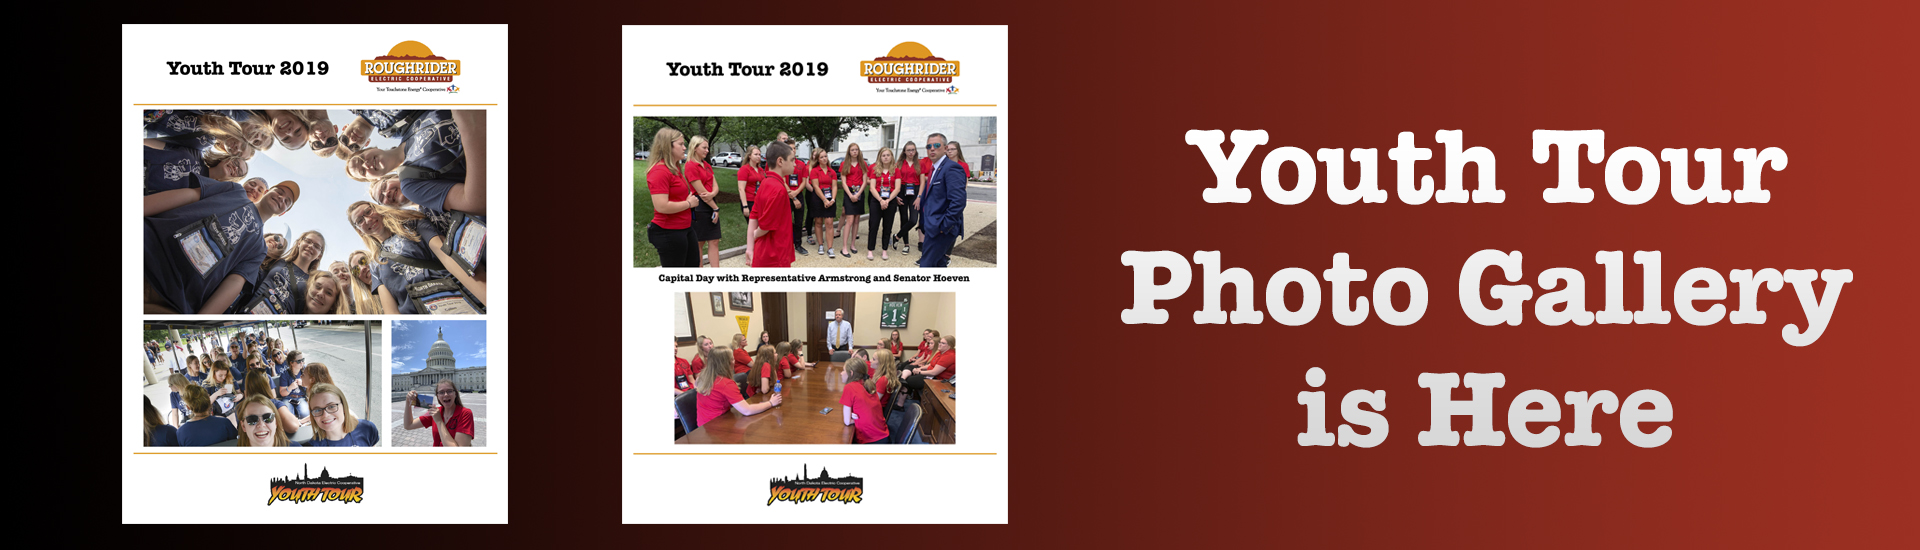 Youth Tour Photo Gallery Link